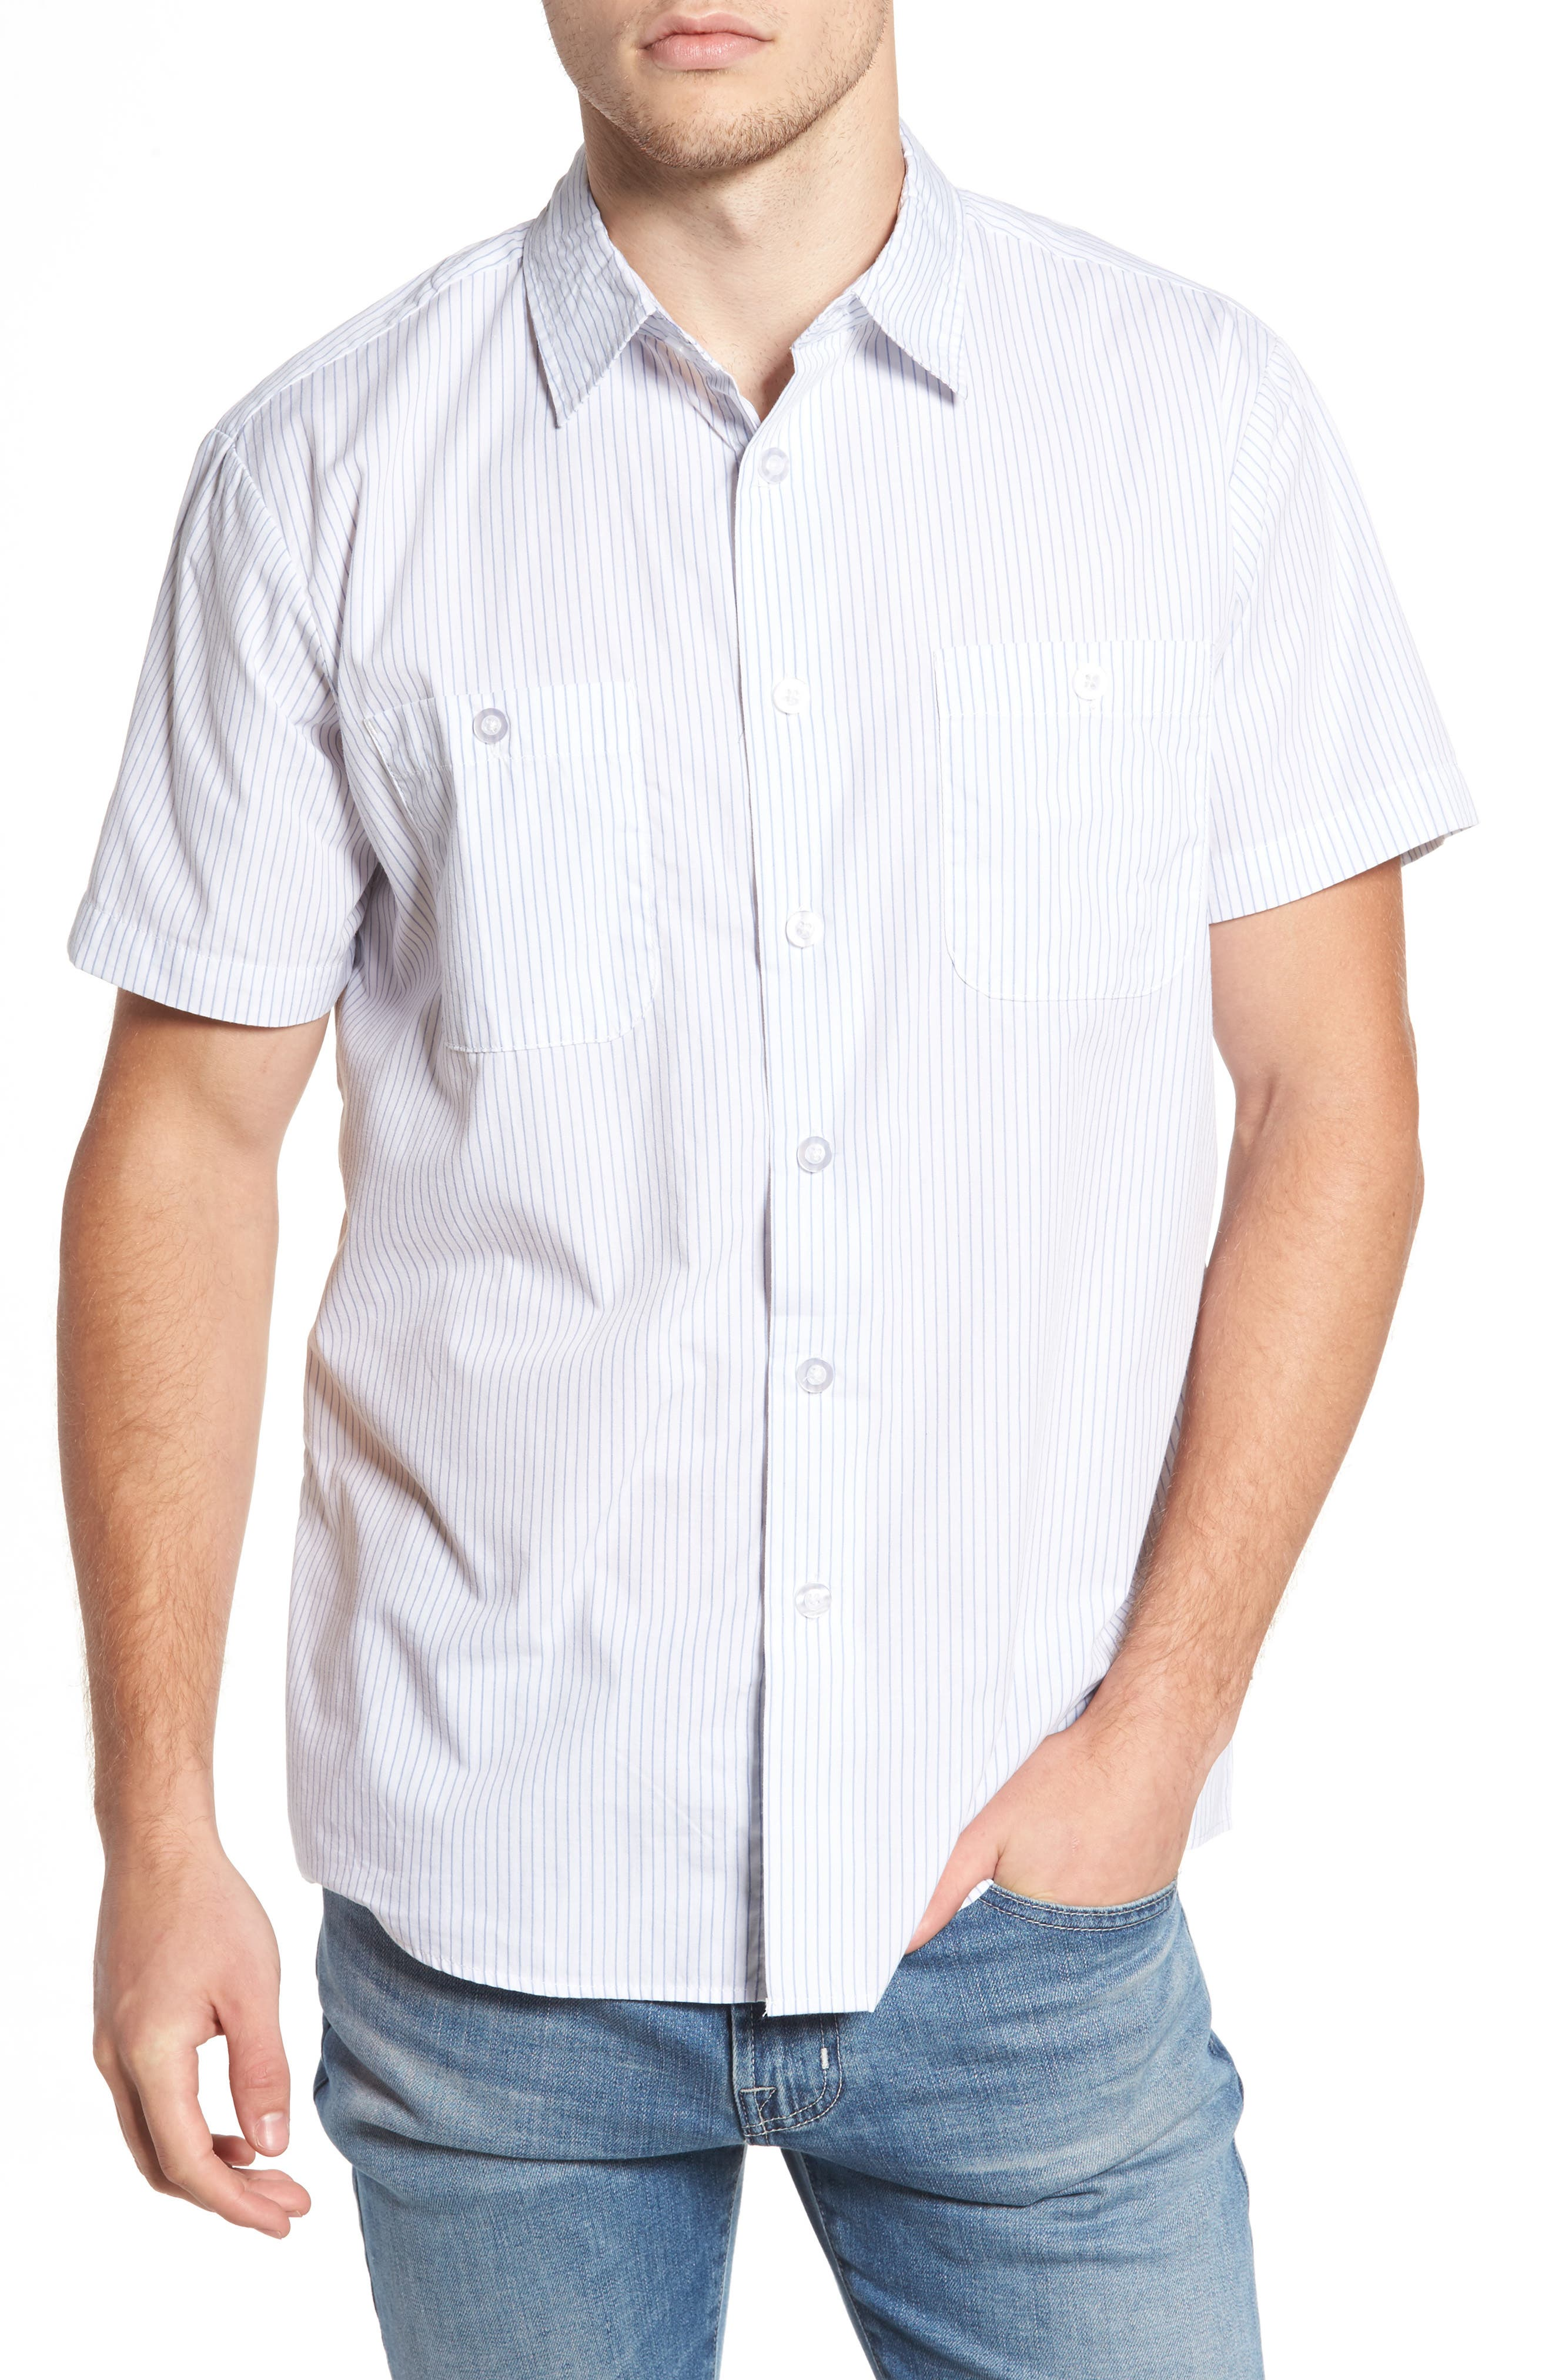 Reeve Pinstripe Woven Shirt,                         Main,                         color, White/ Blue